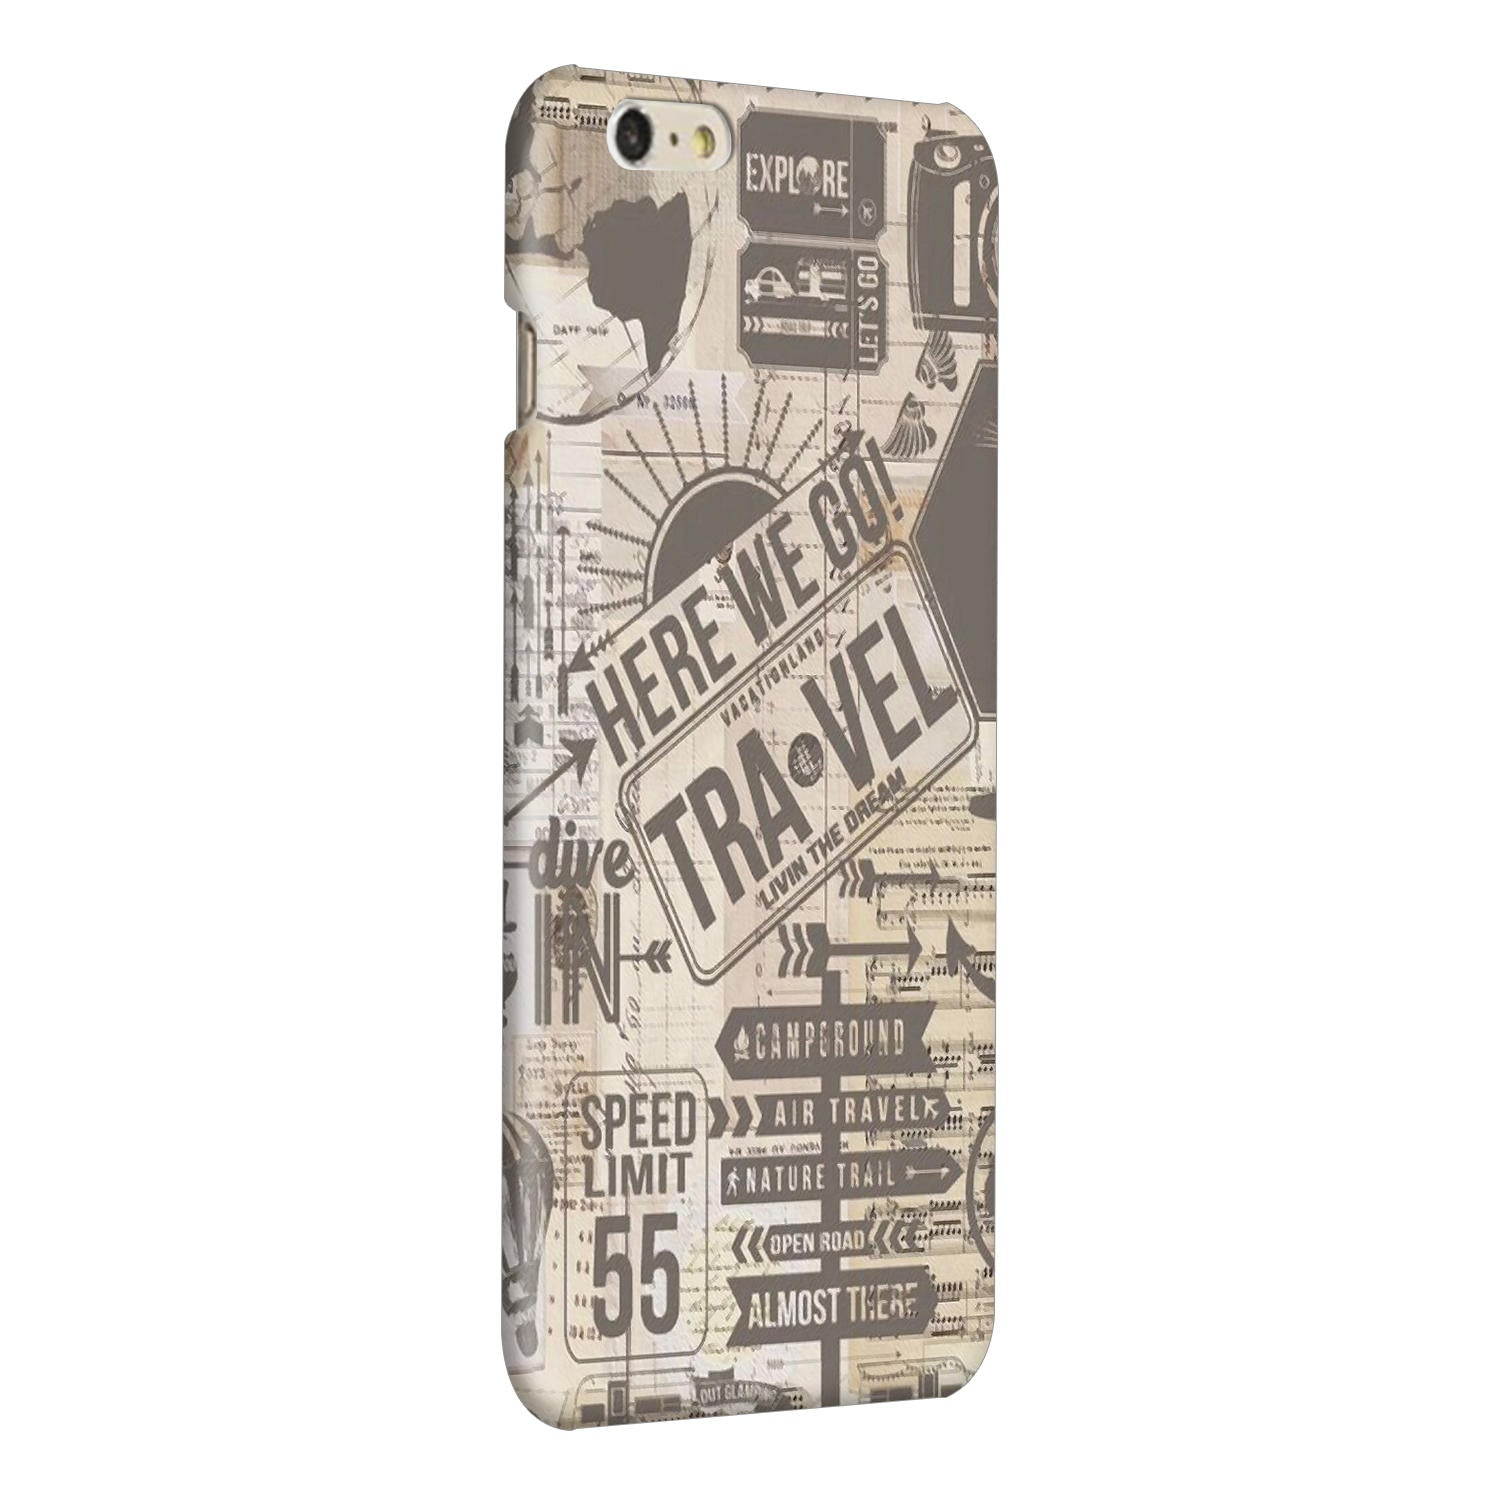 Wanderlust Graffiti iPhone 6 Plus Mobile Cover Case - MADANYU